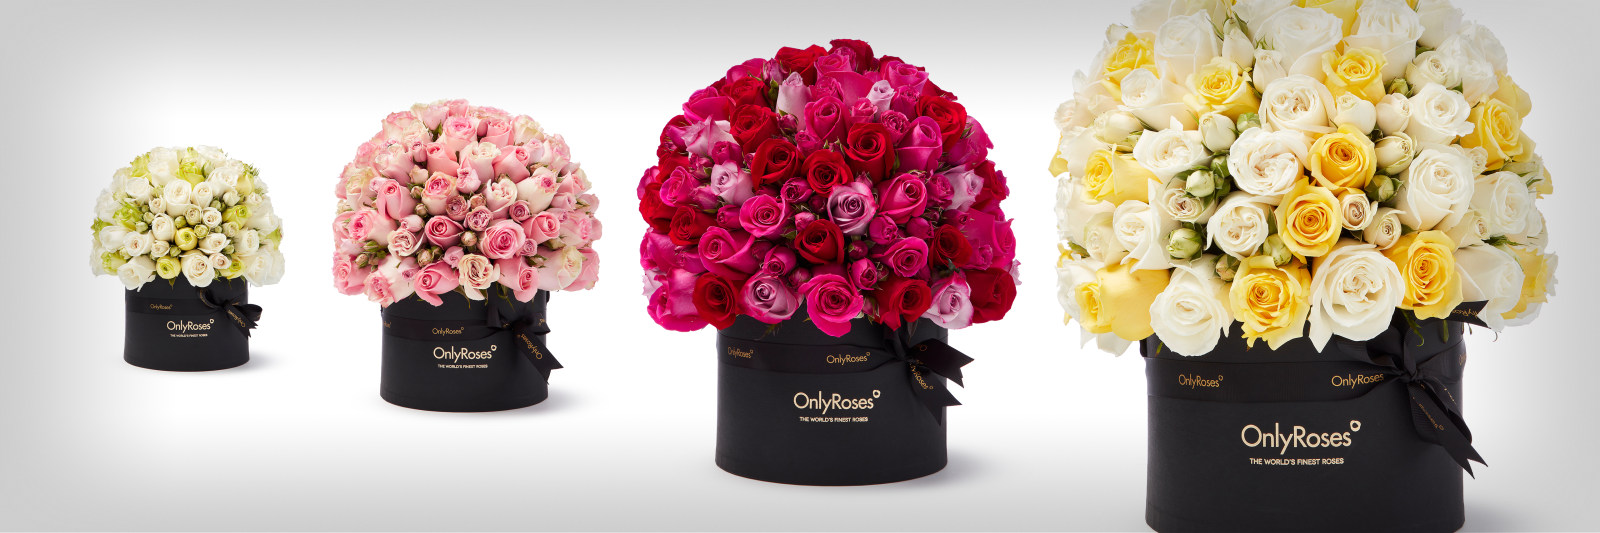 Roses Delivered Dubai Flower Delivery Service By Onlyroses